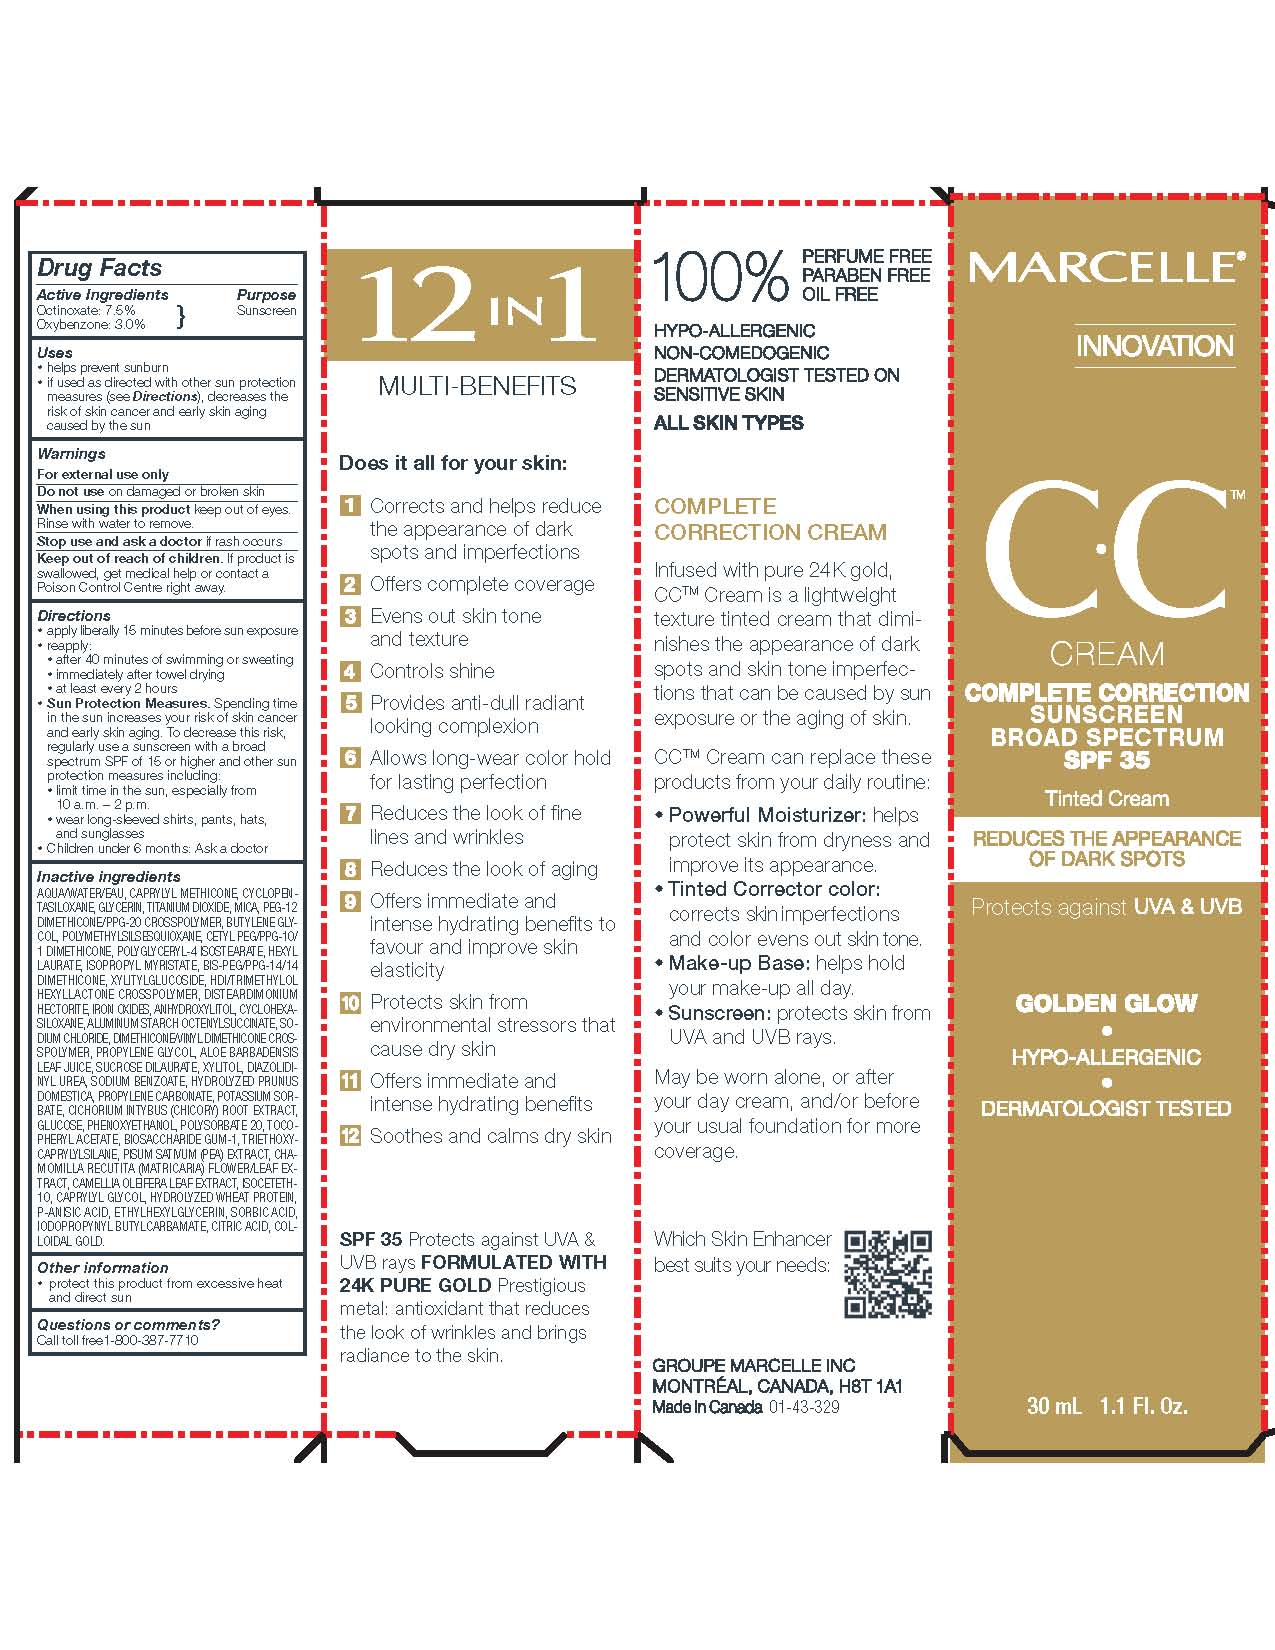 Octinoxate and Oxybenzone (Marcelle CC Cream Complete Correction Sunscreen Broad Spectrum SPF 35)